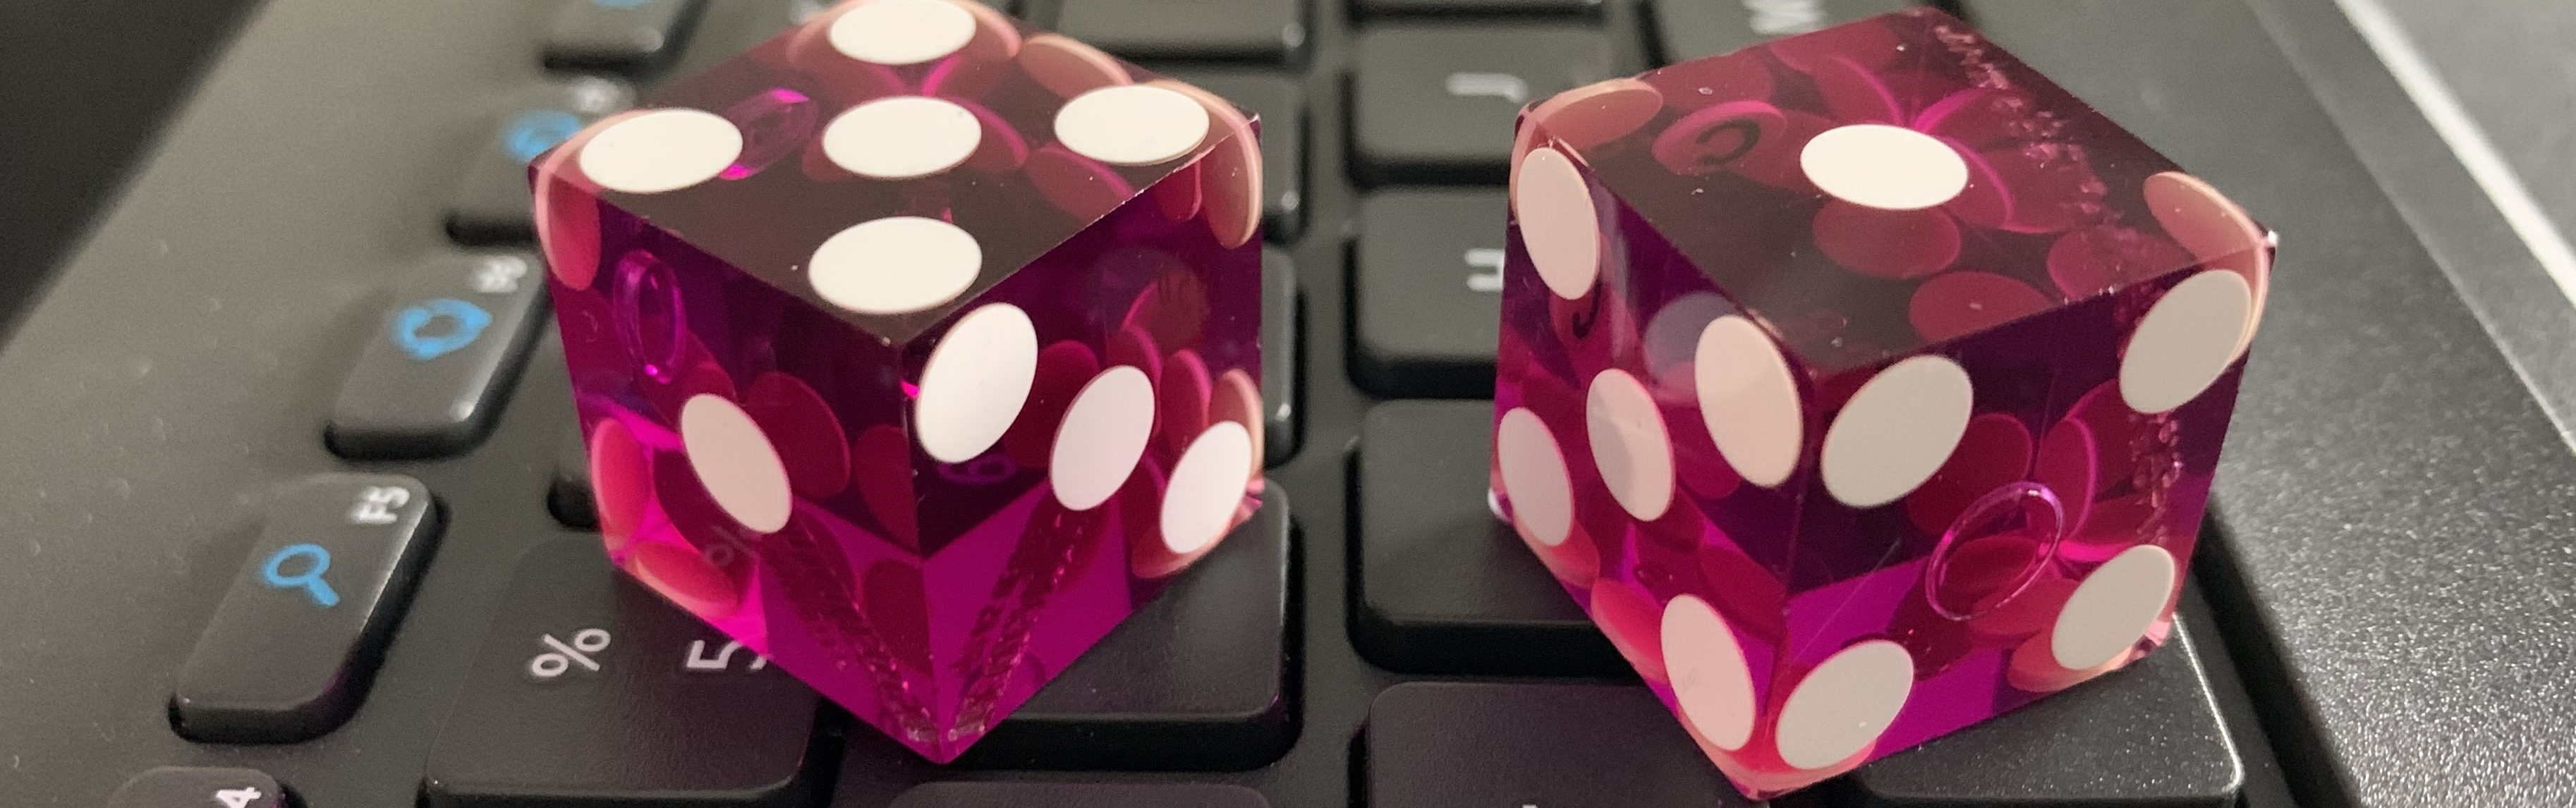 Dice on a Keyboard